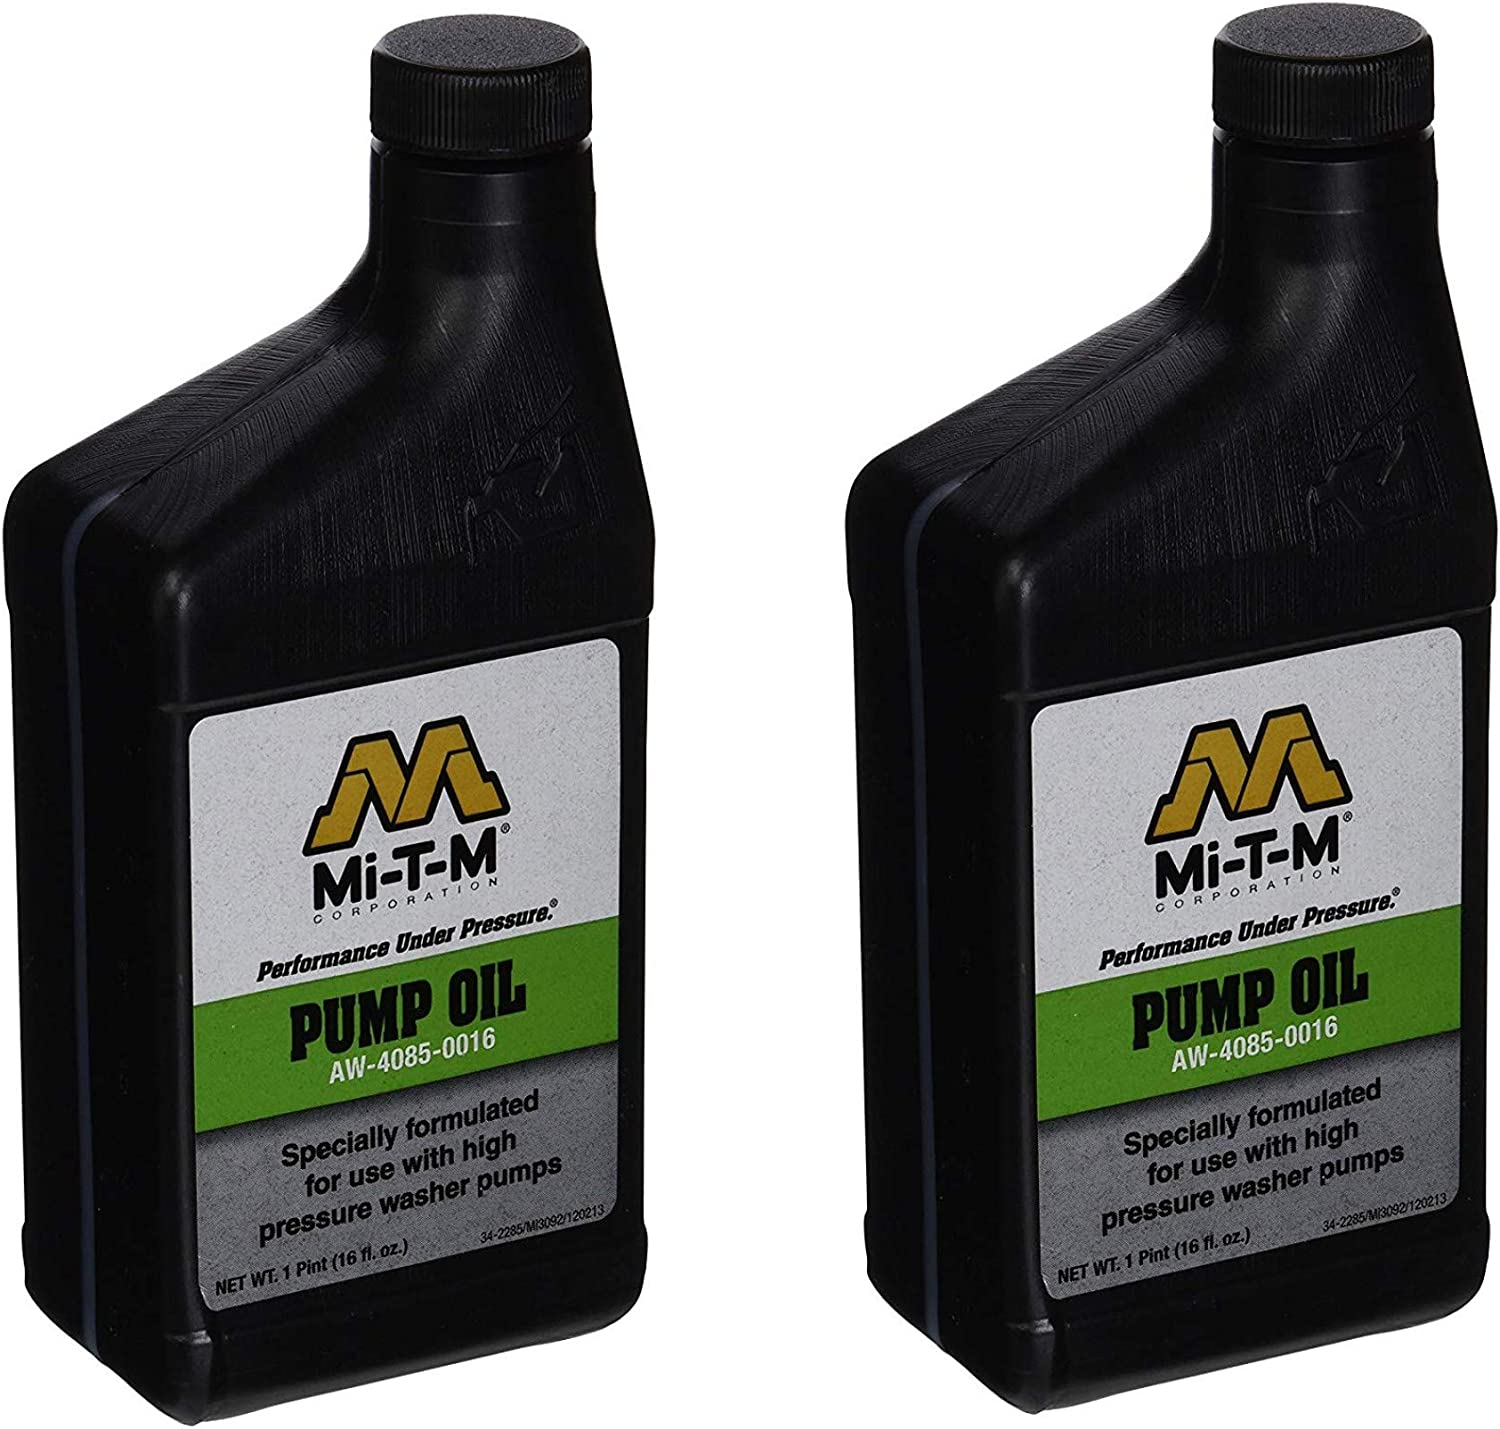 Mi T M AW-4085-0016 Power Washer Pump Oil - 2 Pack